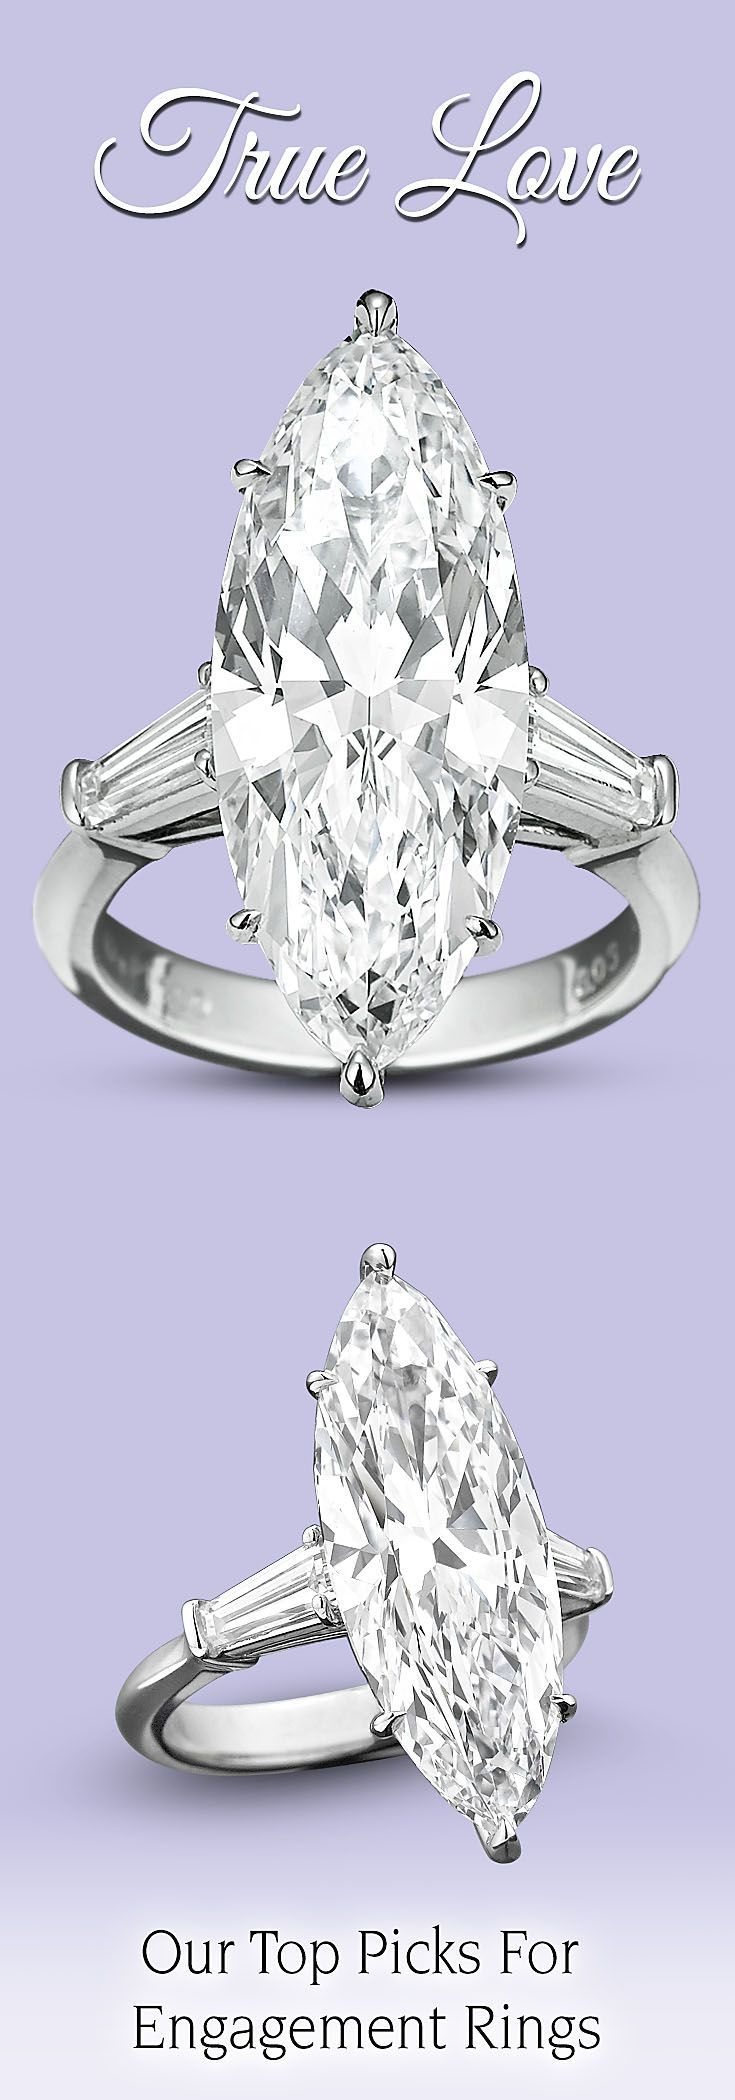 The Extremely Rare And Highly Important Internally Flawless Diamond In This  Ring Boasts All The Hallmarks